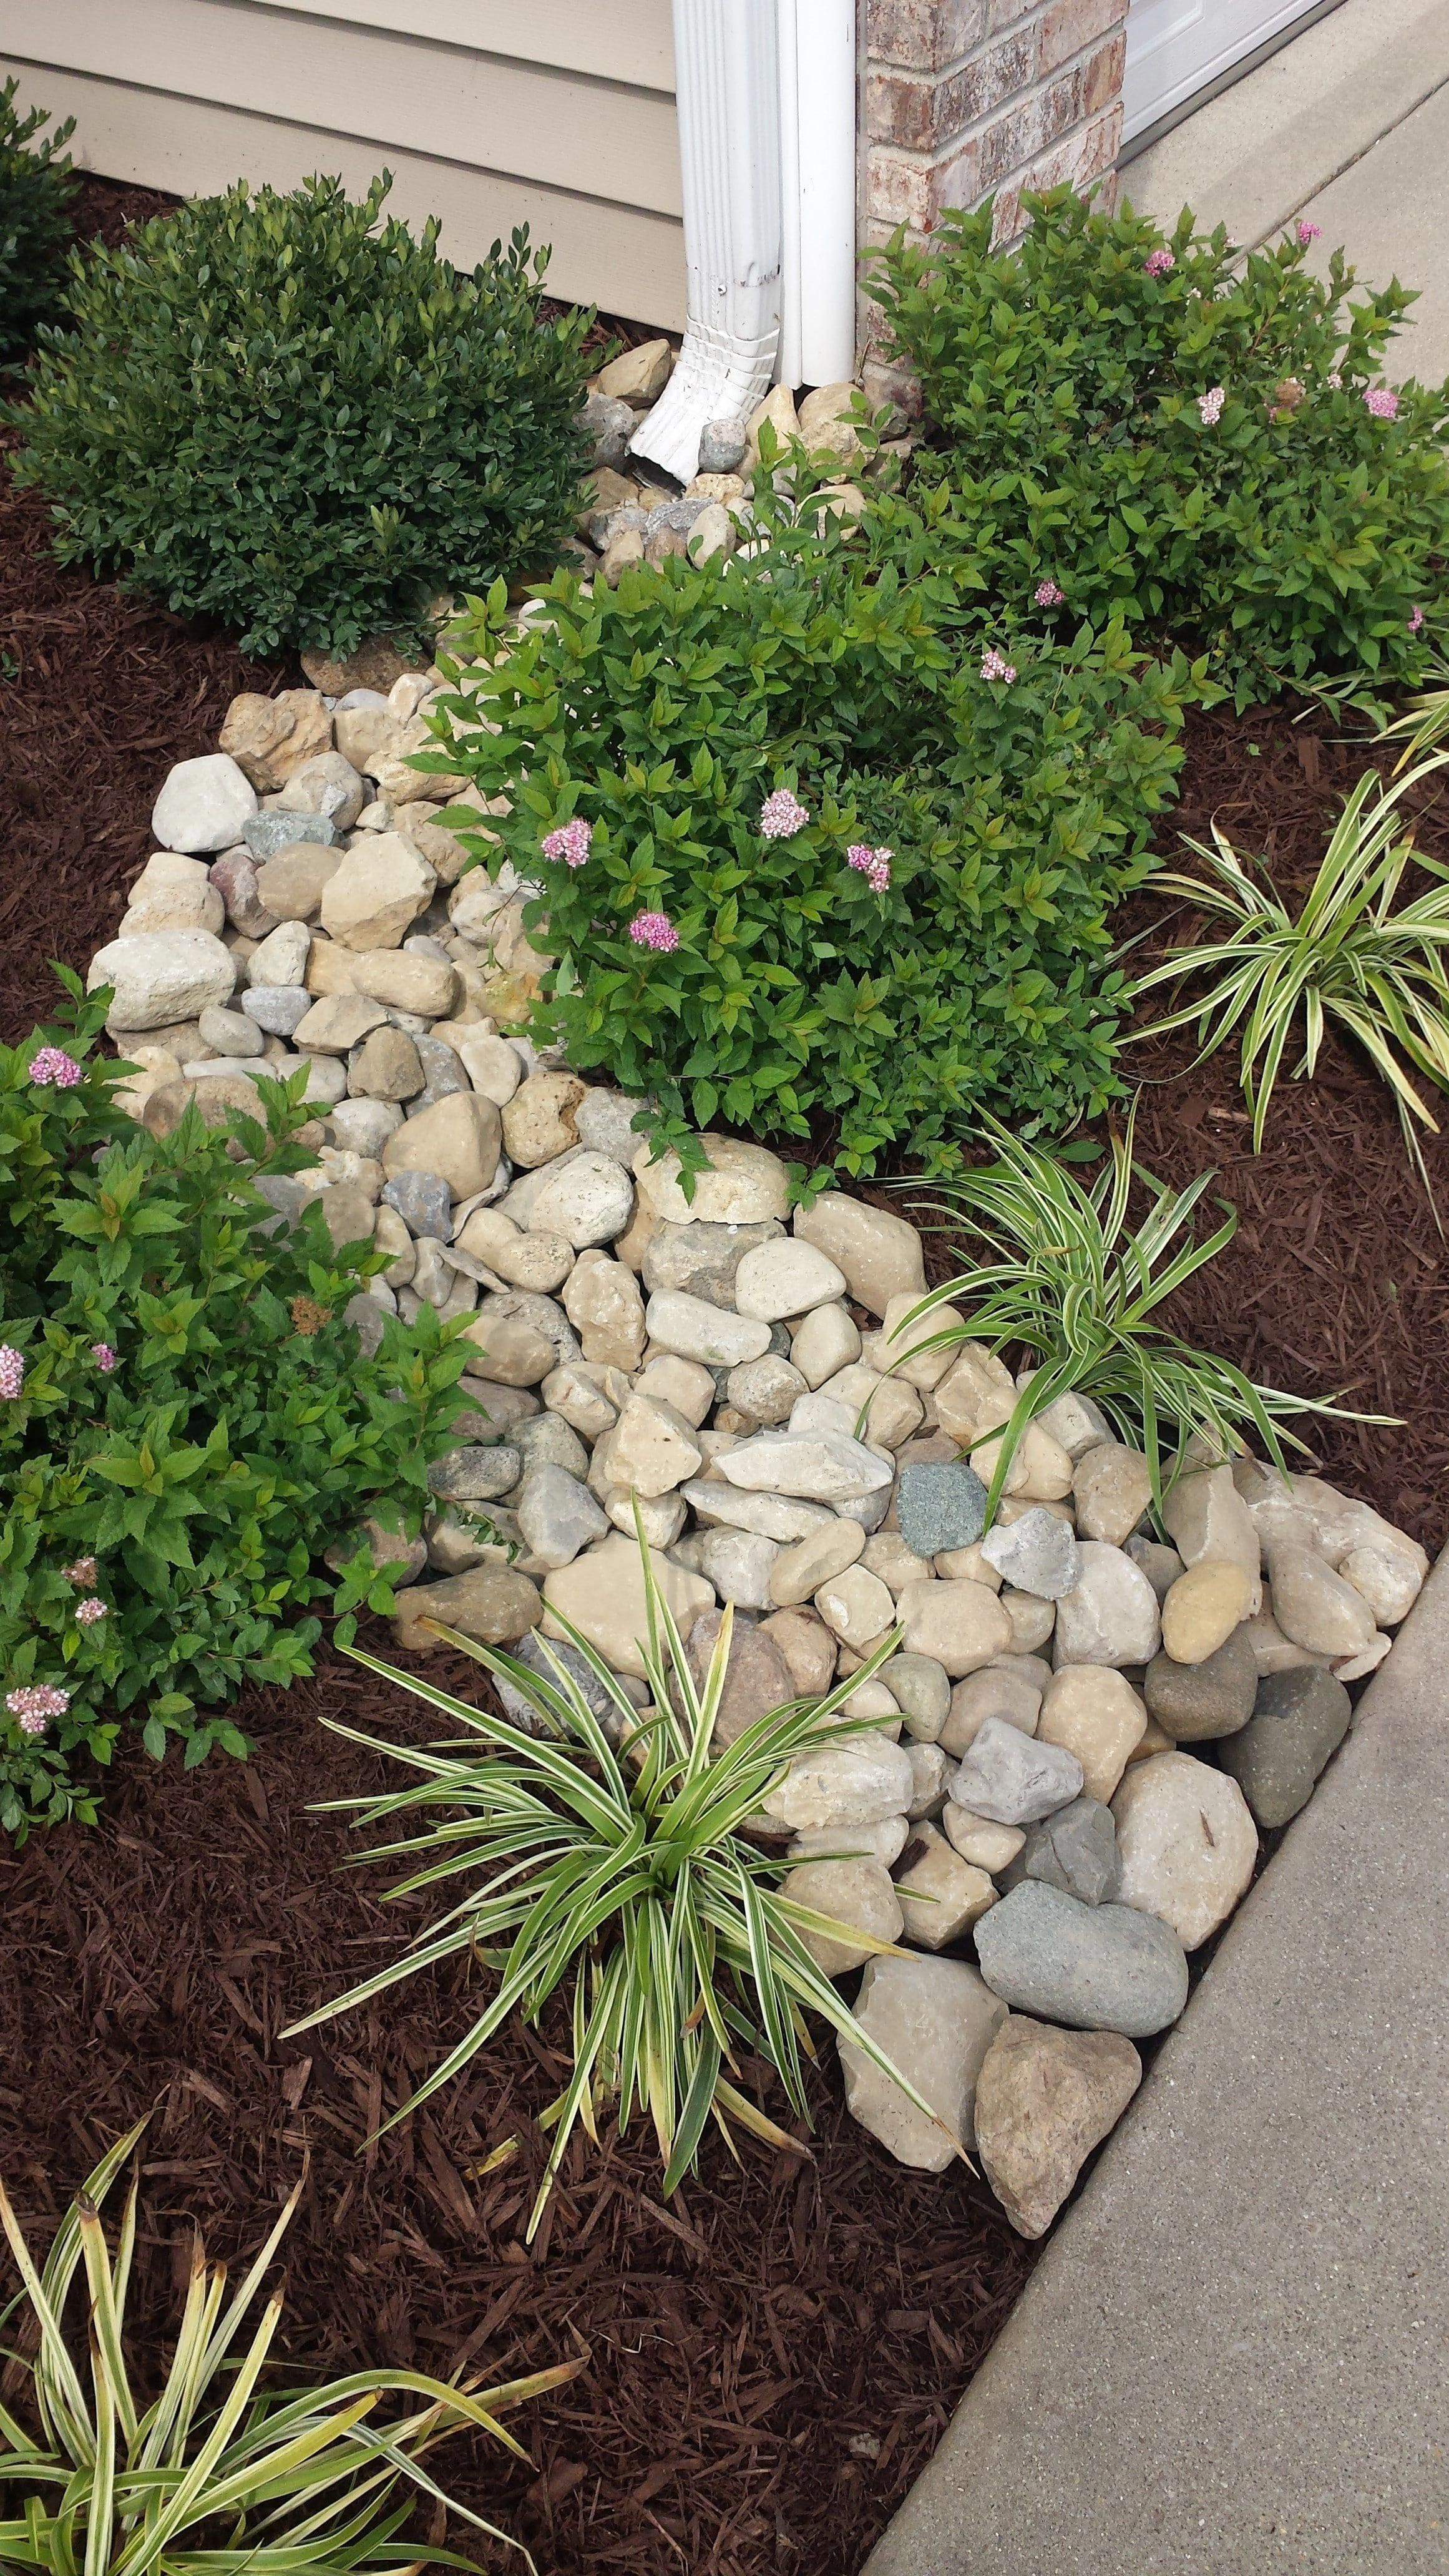 Landscaping Quotes Near Me Landscapingqueencreek Post 6652628969